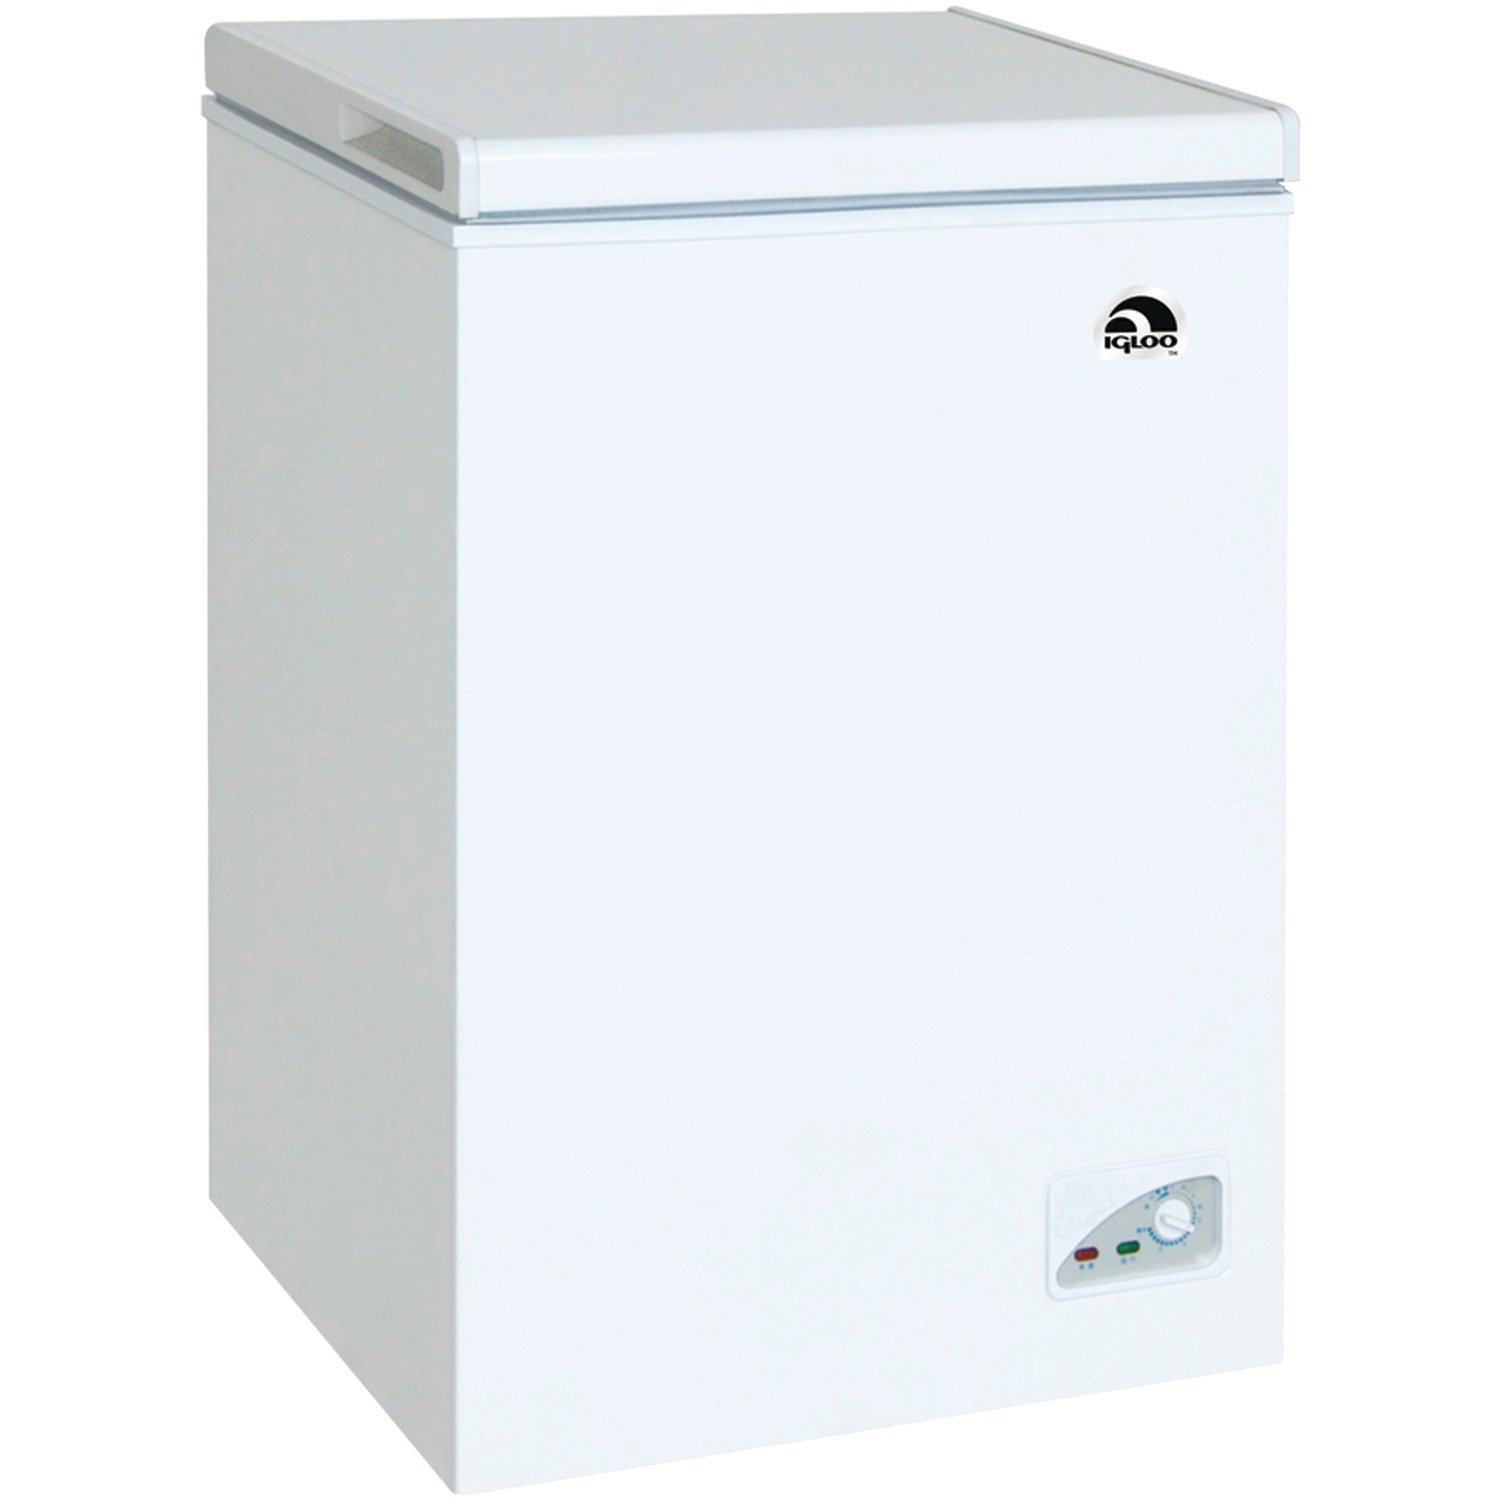 Igloo Frf434 3.5 Cubic-ft Chest Freezer